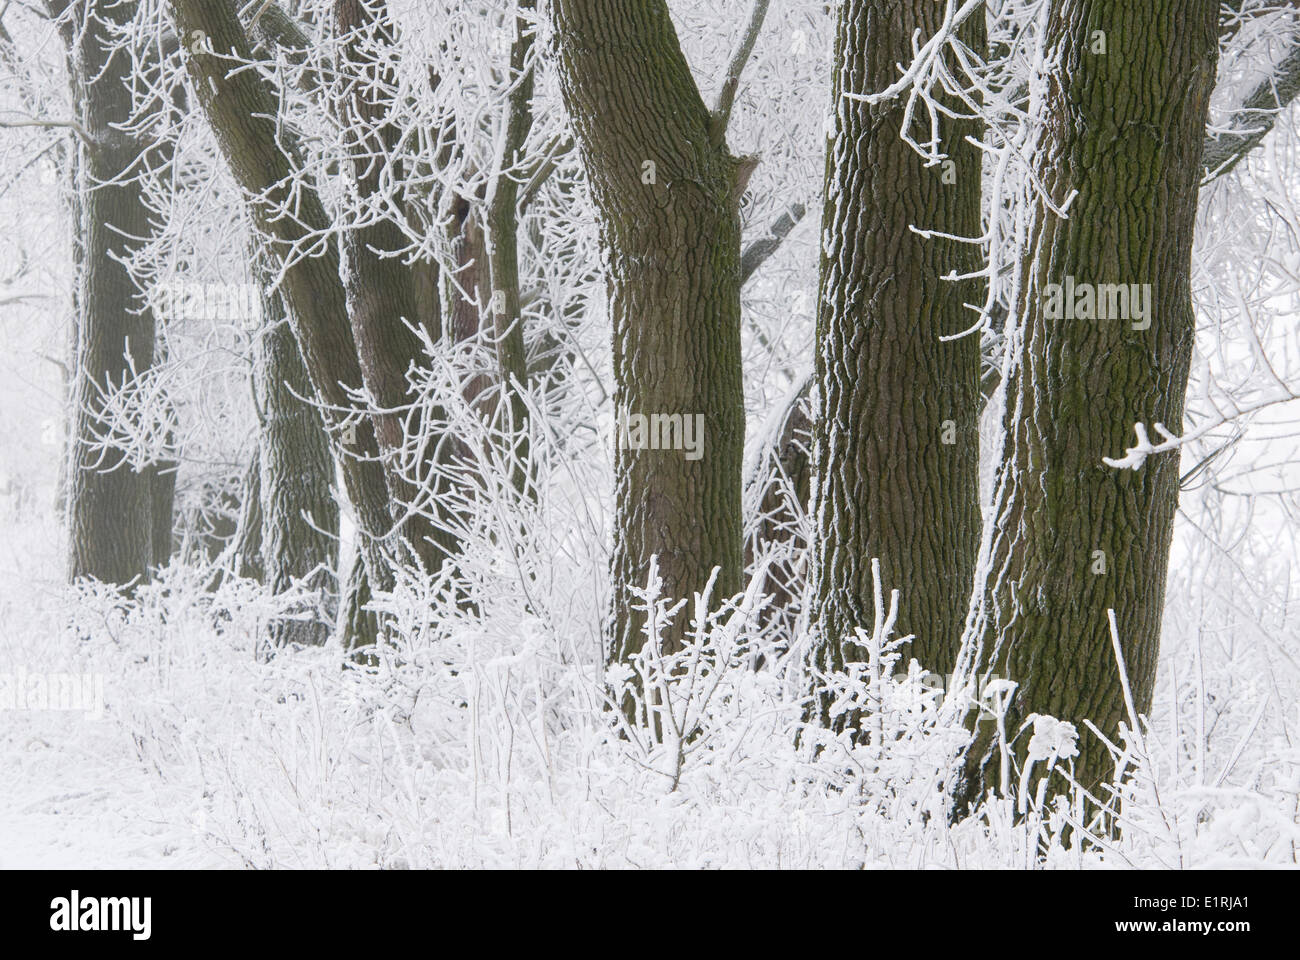 Poplars in snowy landscape covered in snow and hoar frost Stock Photo